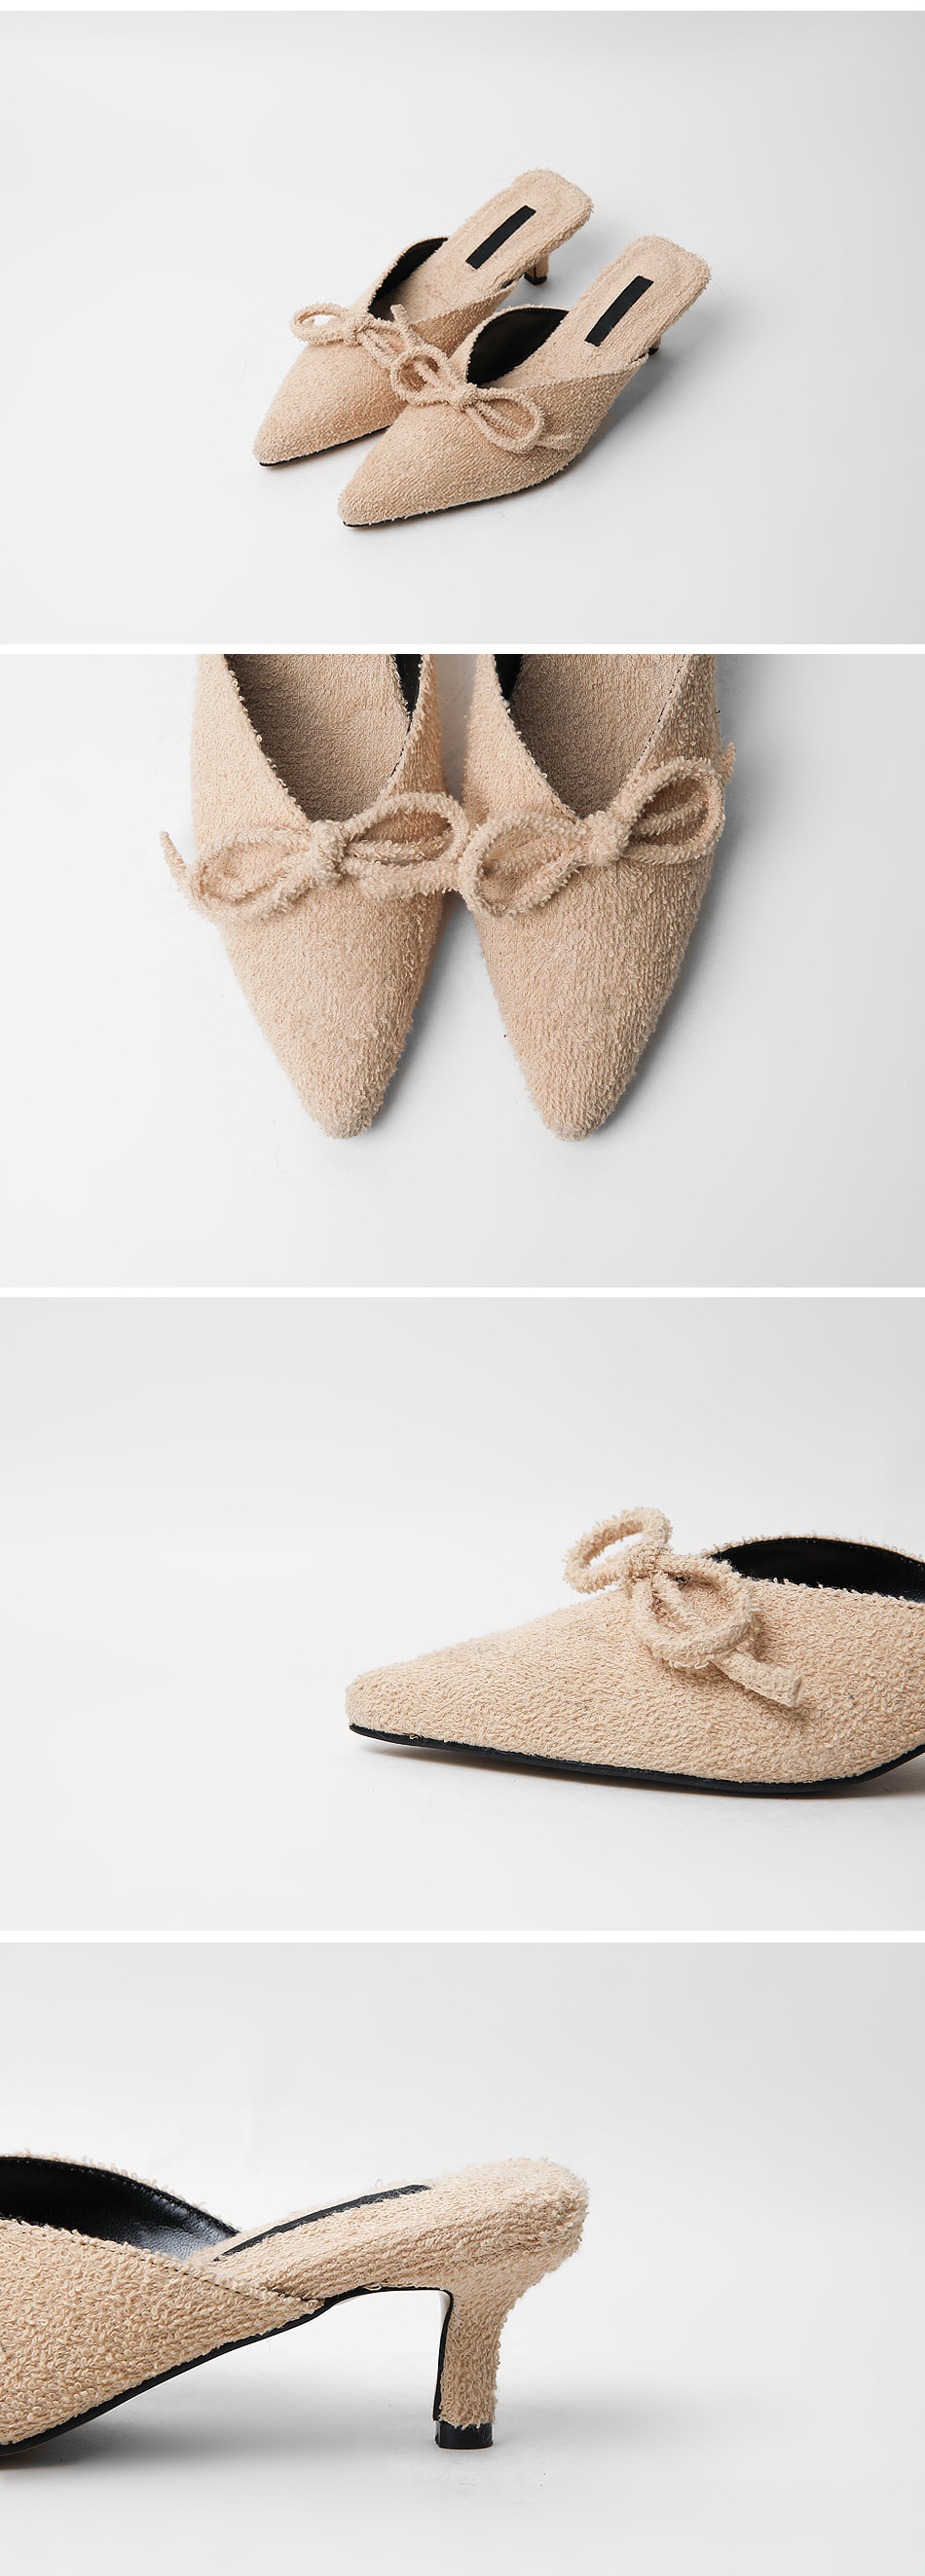 Sheep in Mule Slippers 5cm